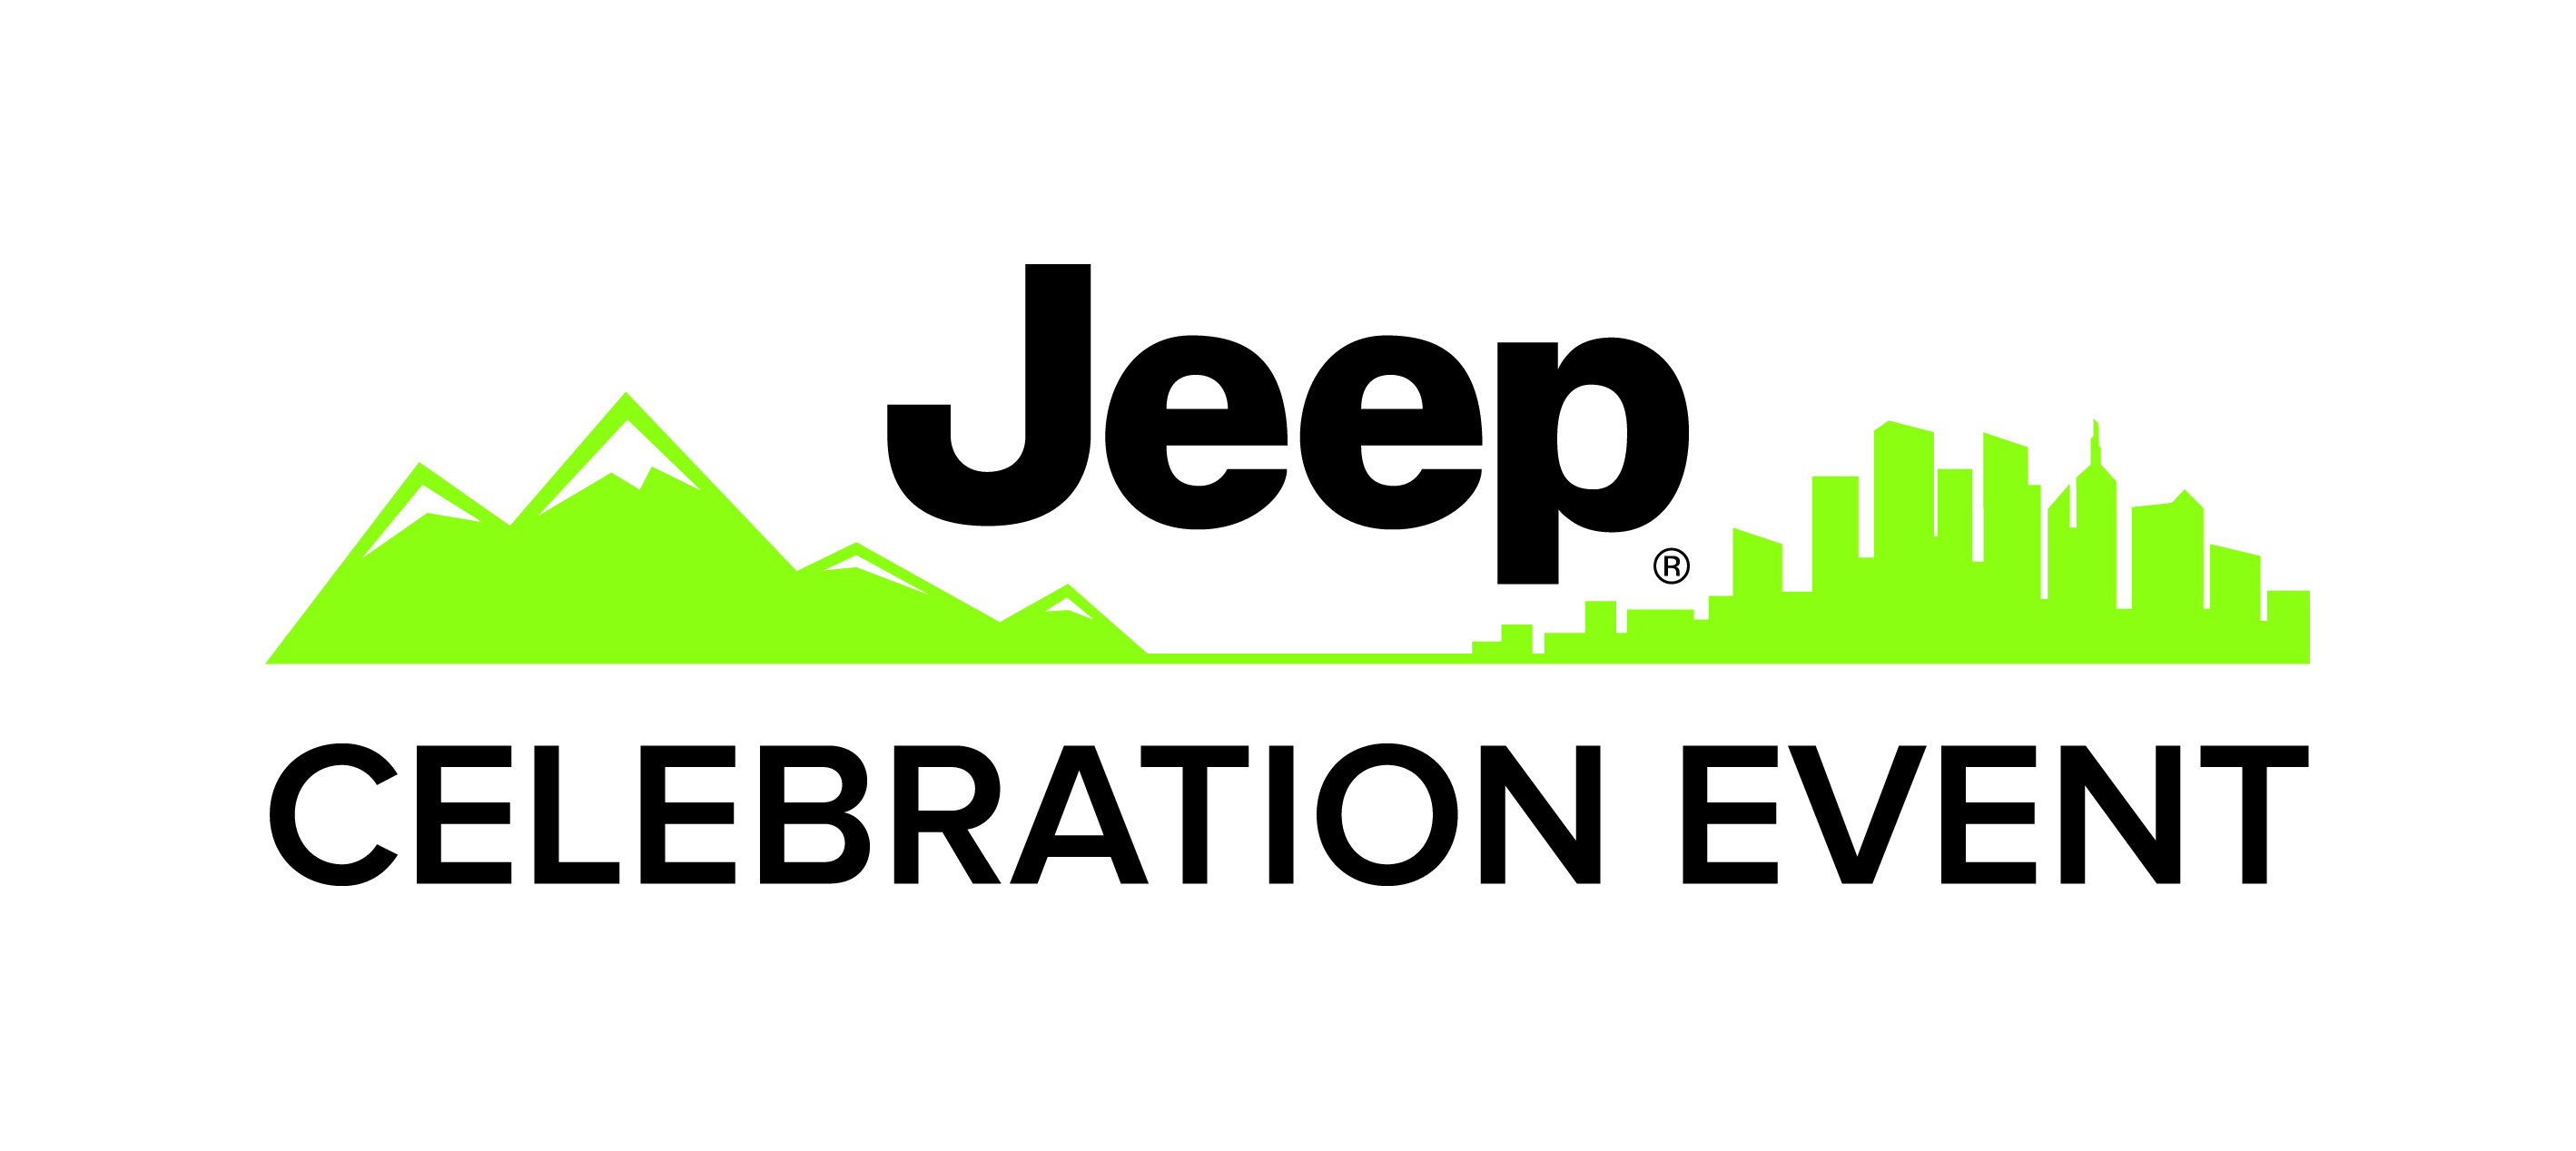 Jeep Celebration Event in Clarksburg, WV